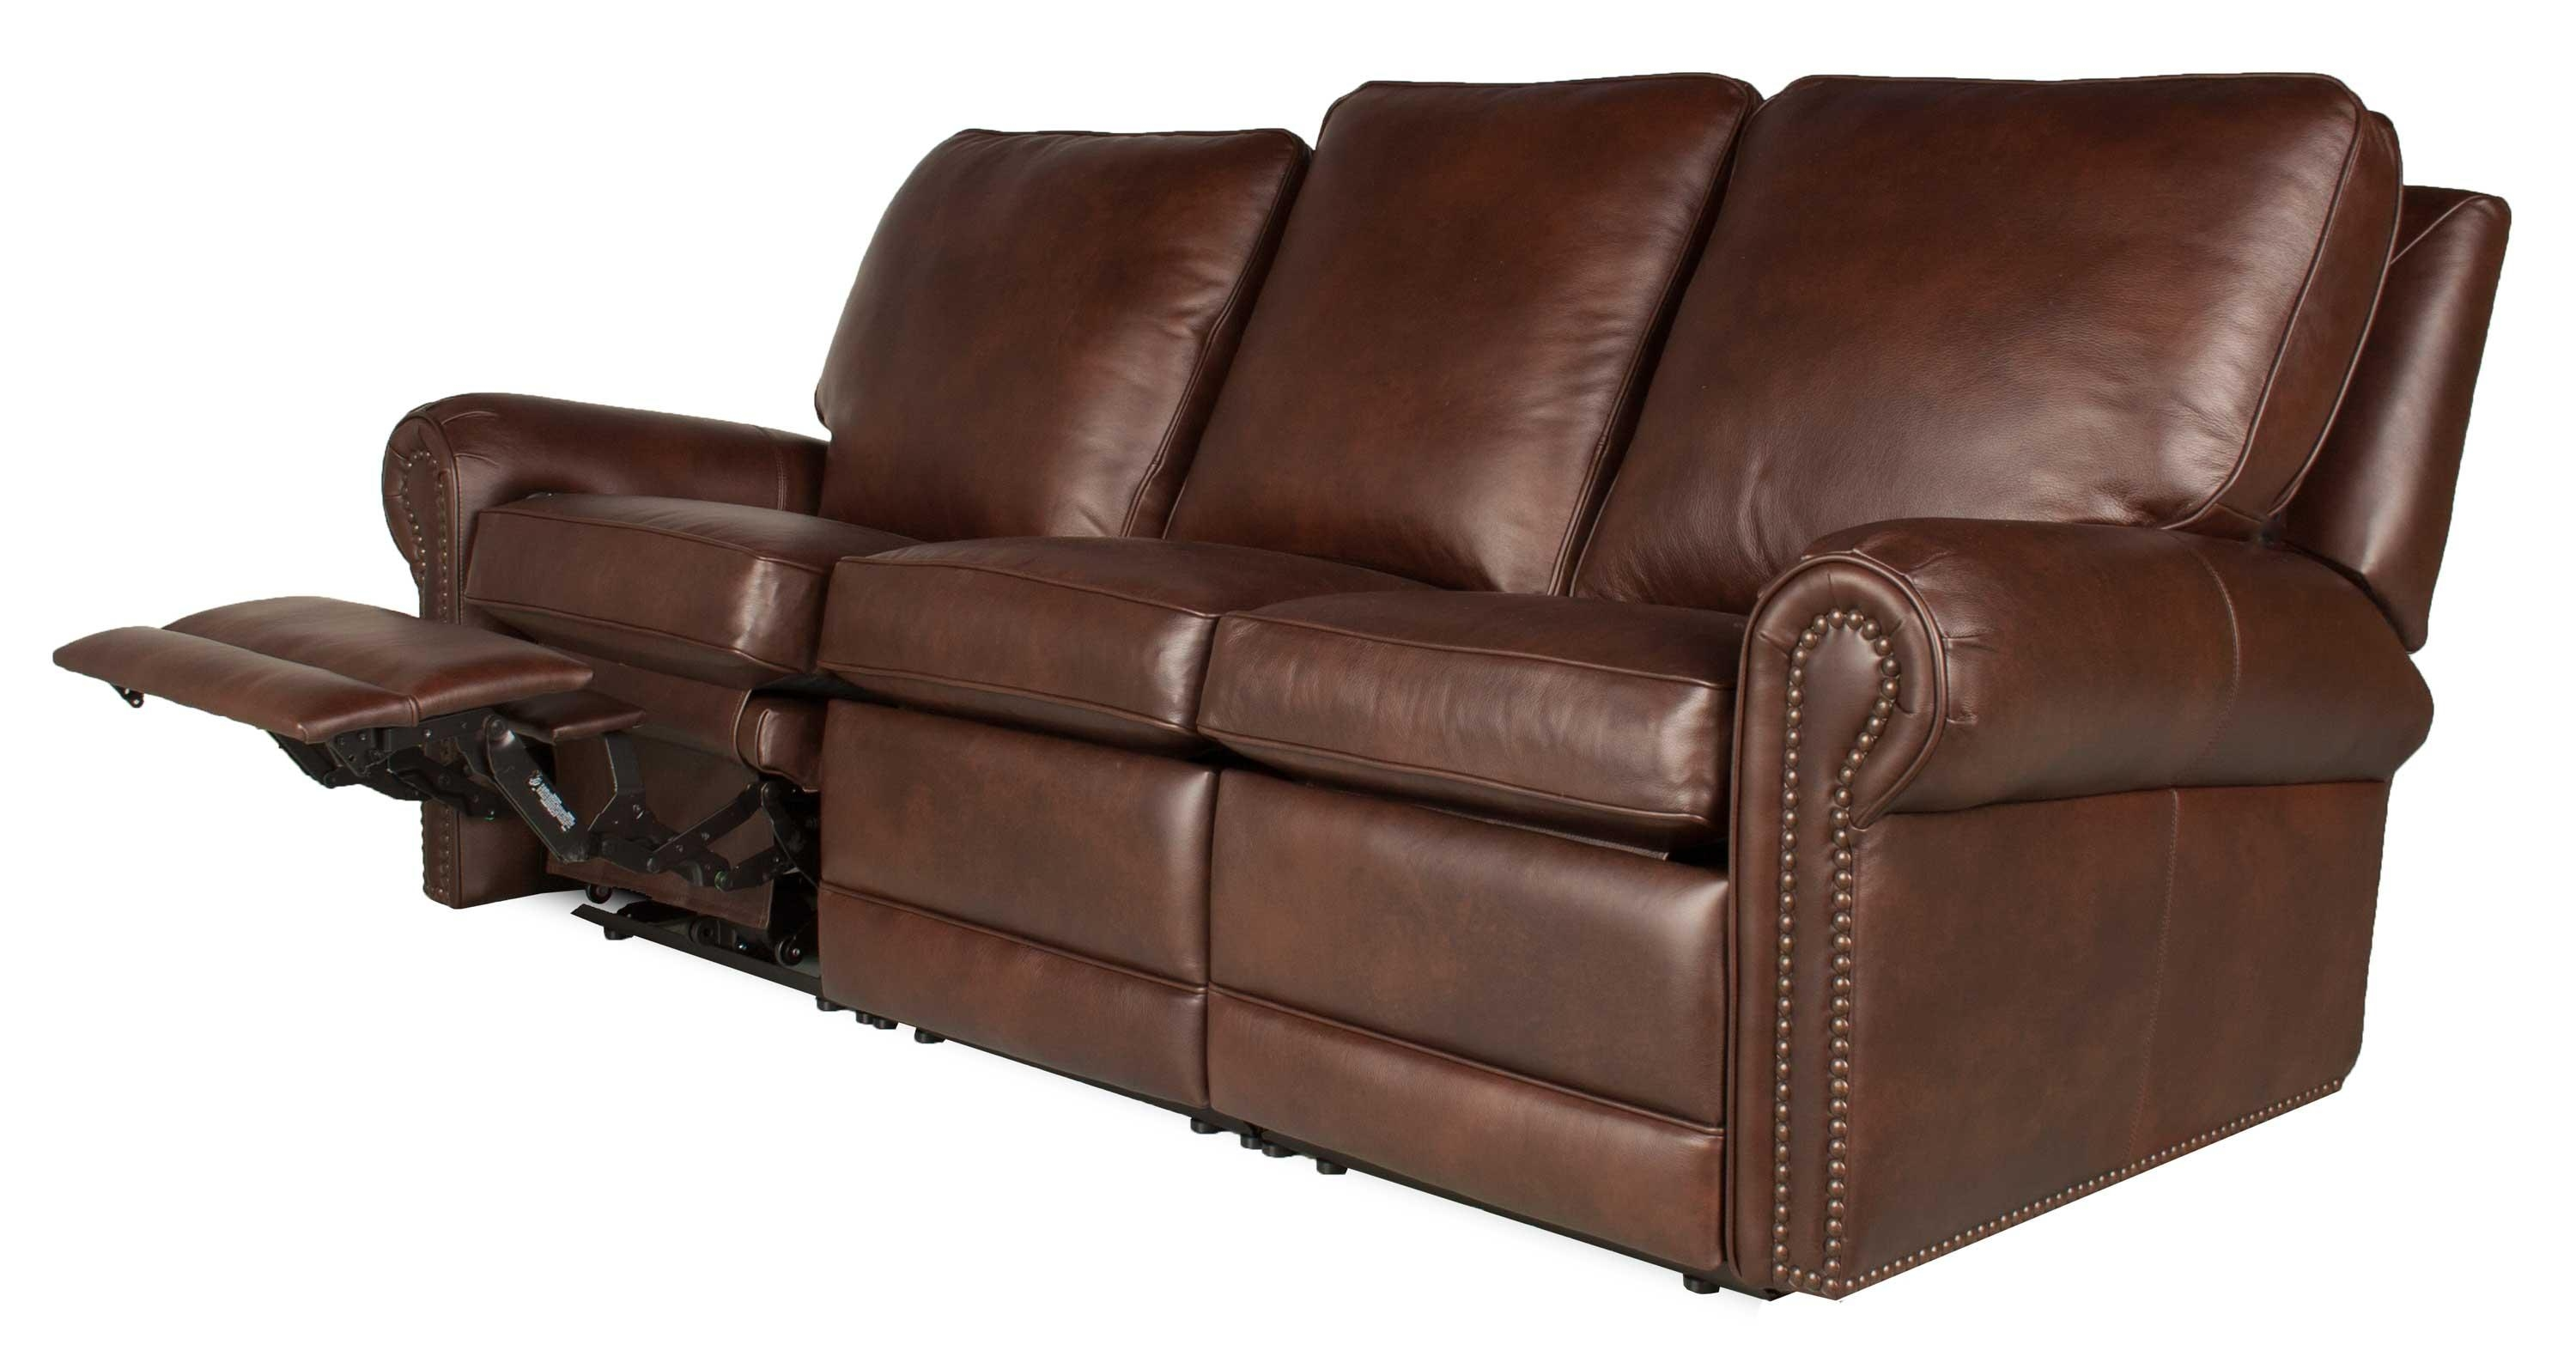 Sofas Center : Leather Recliner Sofa Seater Sale Stupendous Within Berkline Sofa (View 16 of 20)